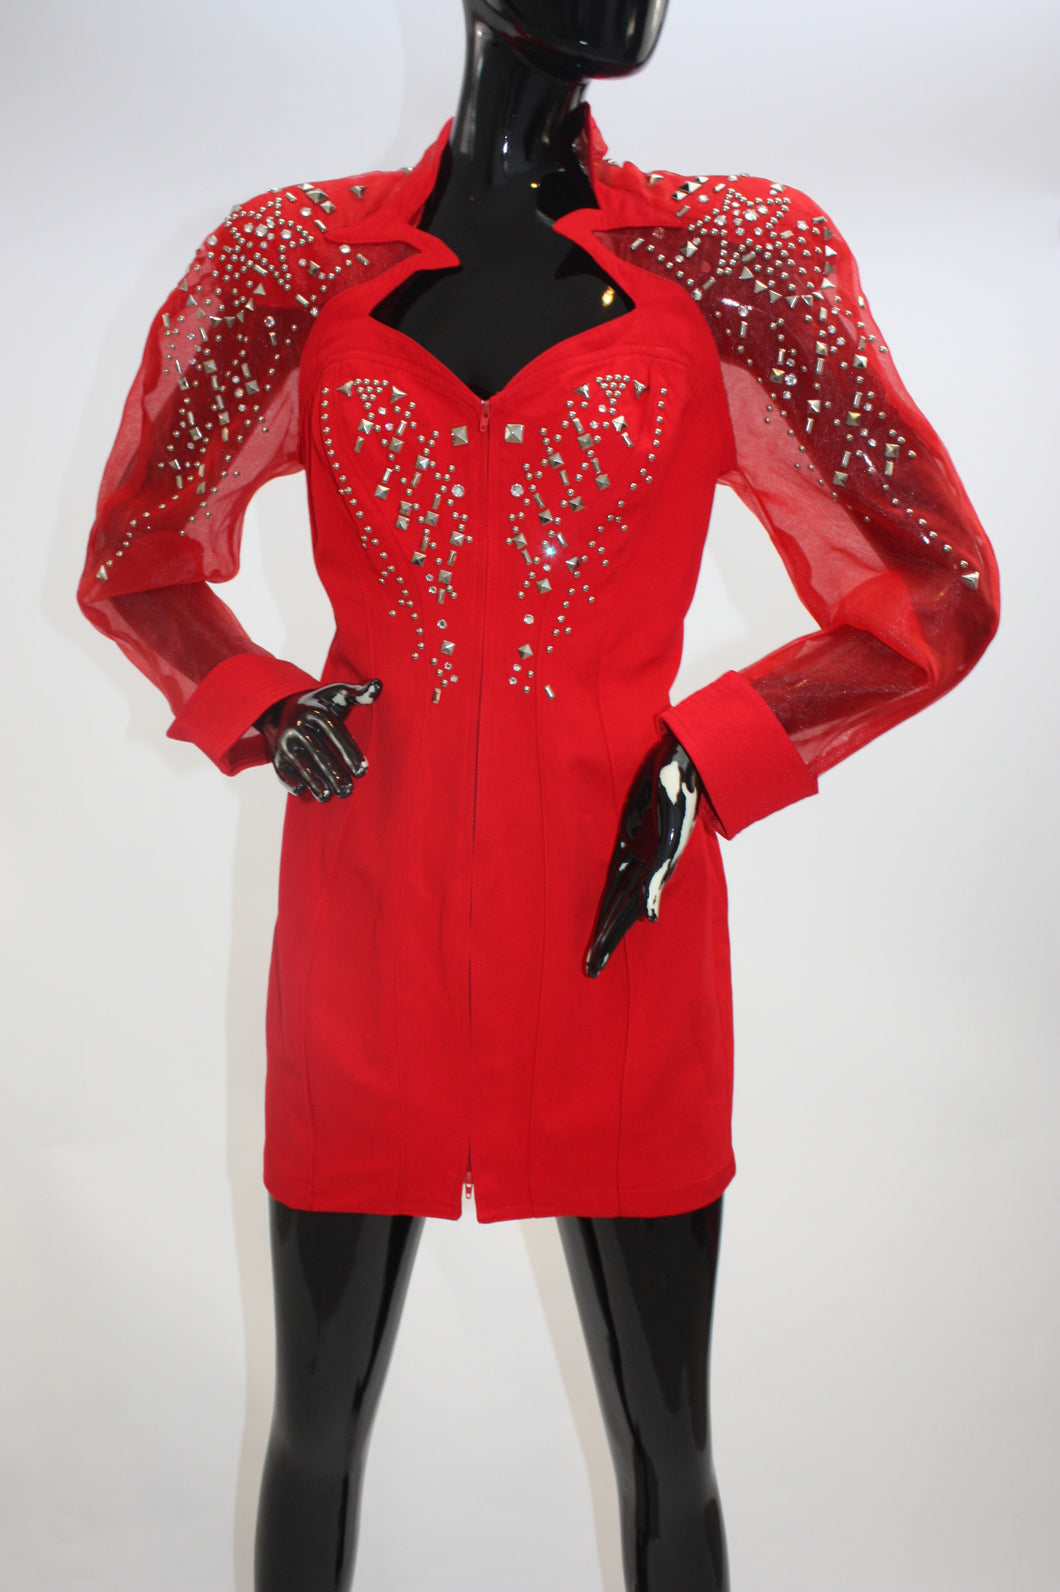 Vintage 1980s Red Dynasty style rhinestone and studs mini dress